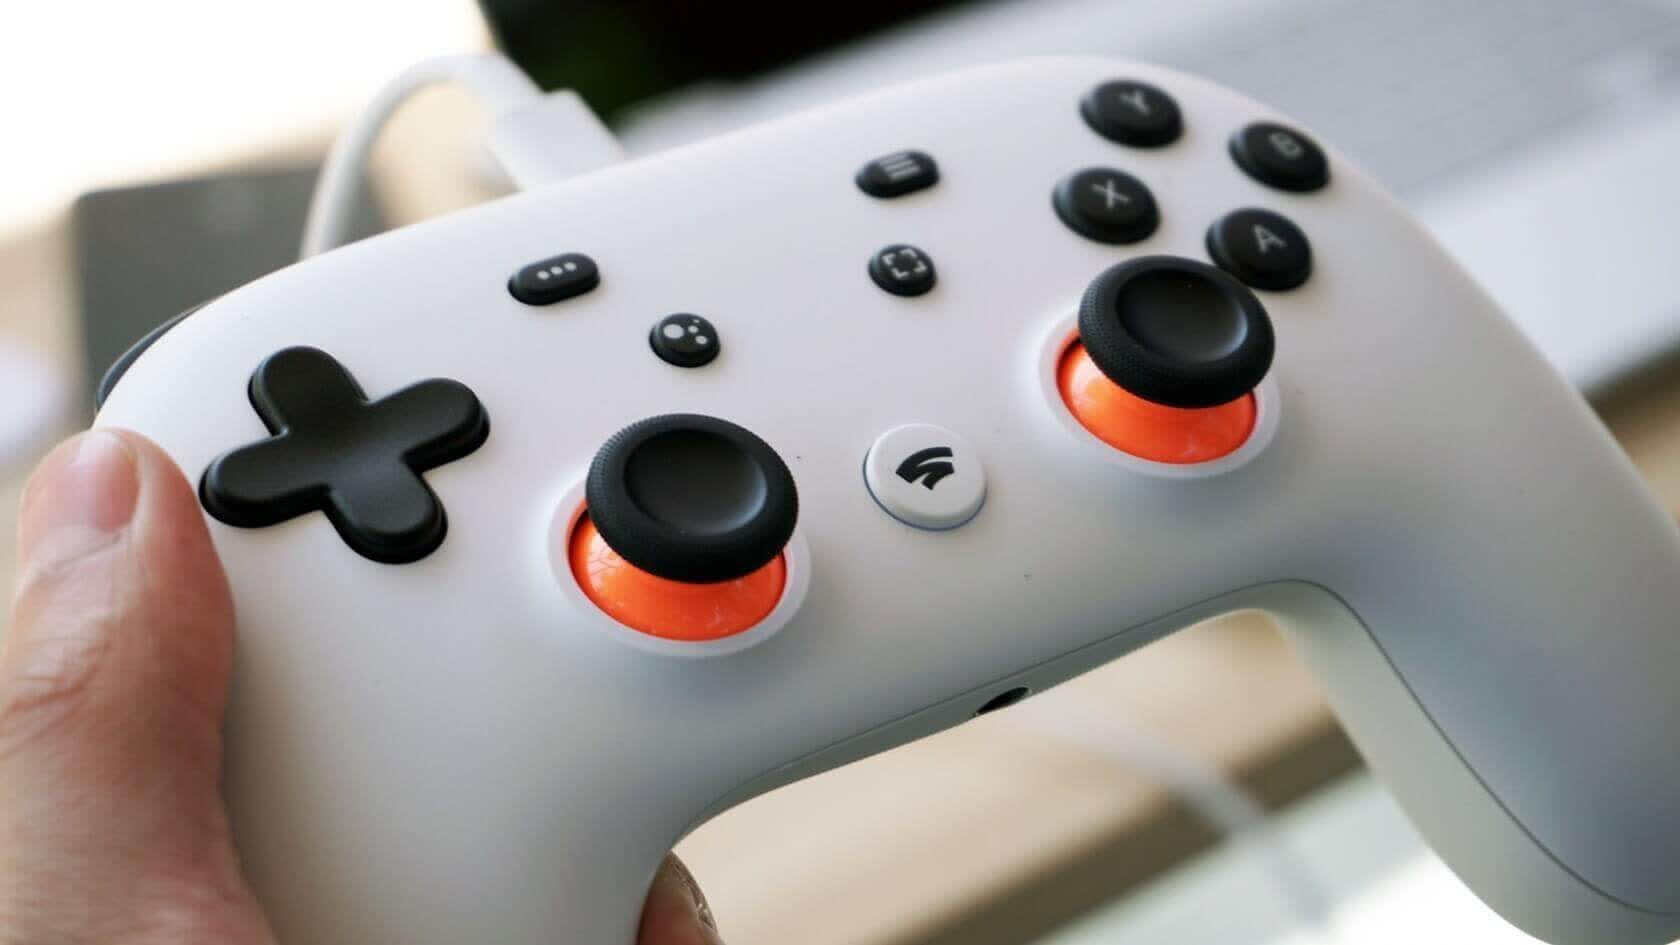 Game devs wanted: Google Stadia gets more favorable revenue split for publishers and developers